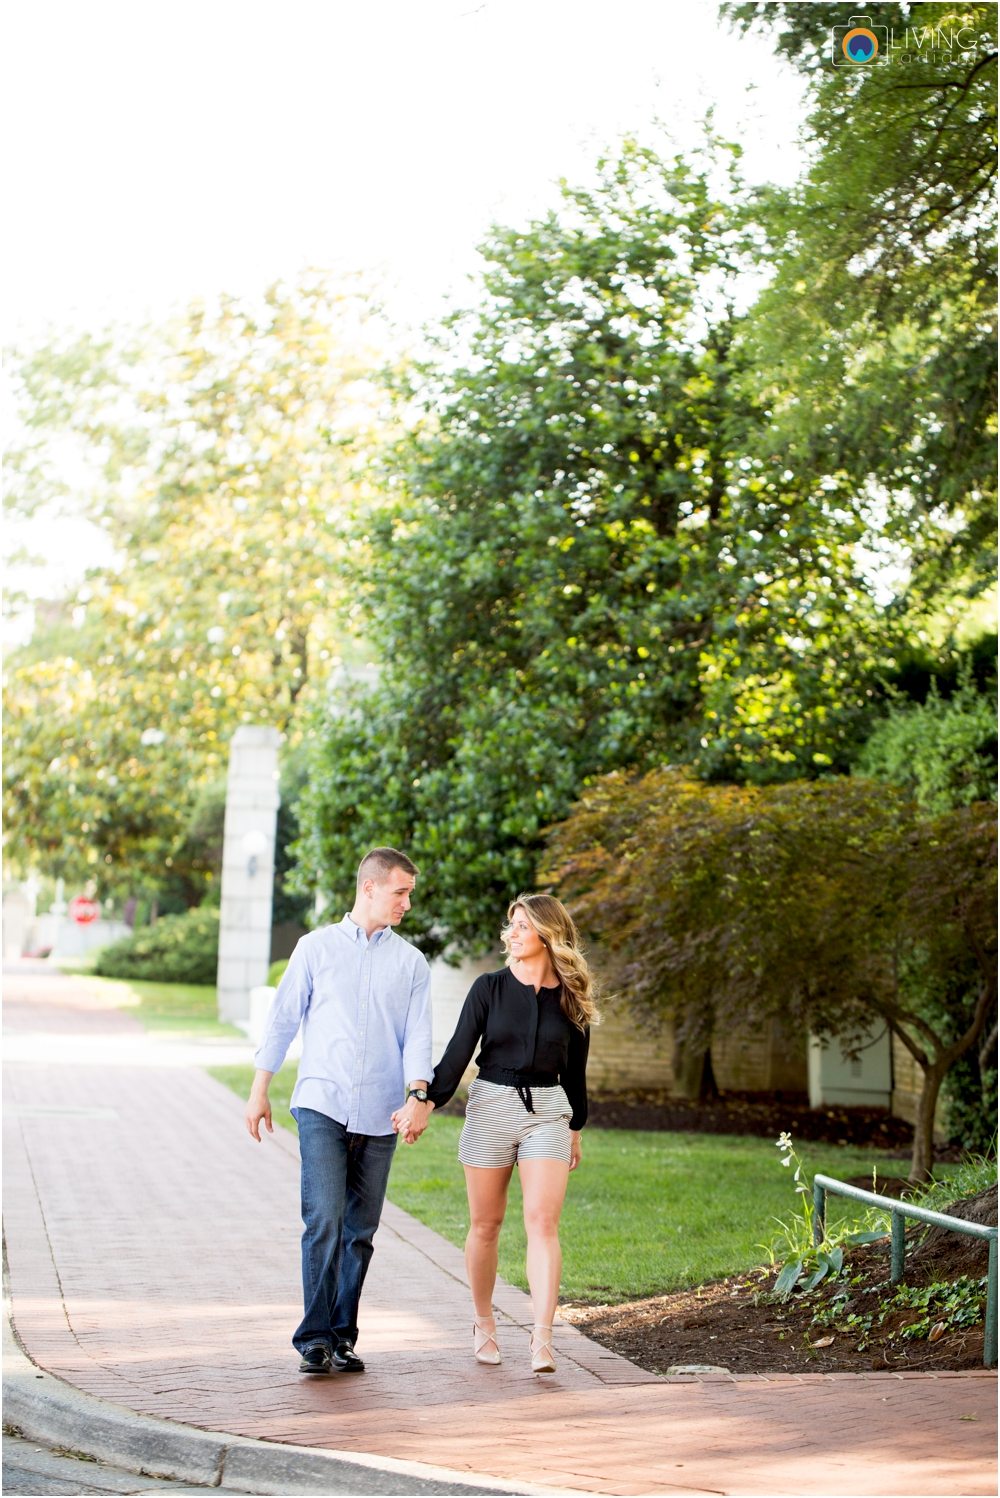 Annapolis-Naval-Academy-Engagement-Wedding-Pictures-Living-Radiant-Photography-Outdoor-Waterfront-Lauren-James_0005.jpg